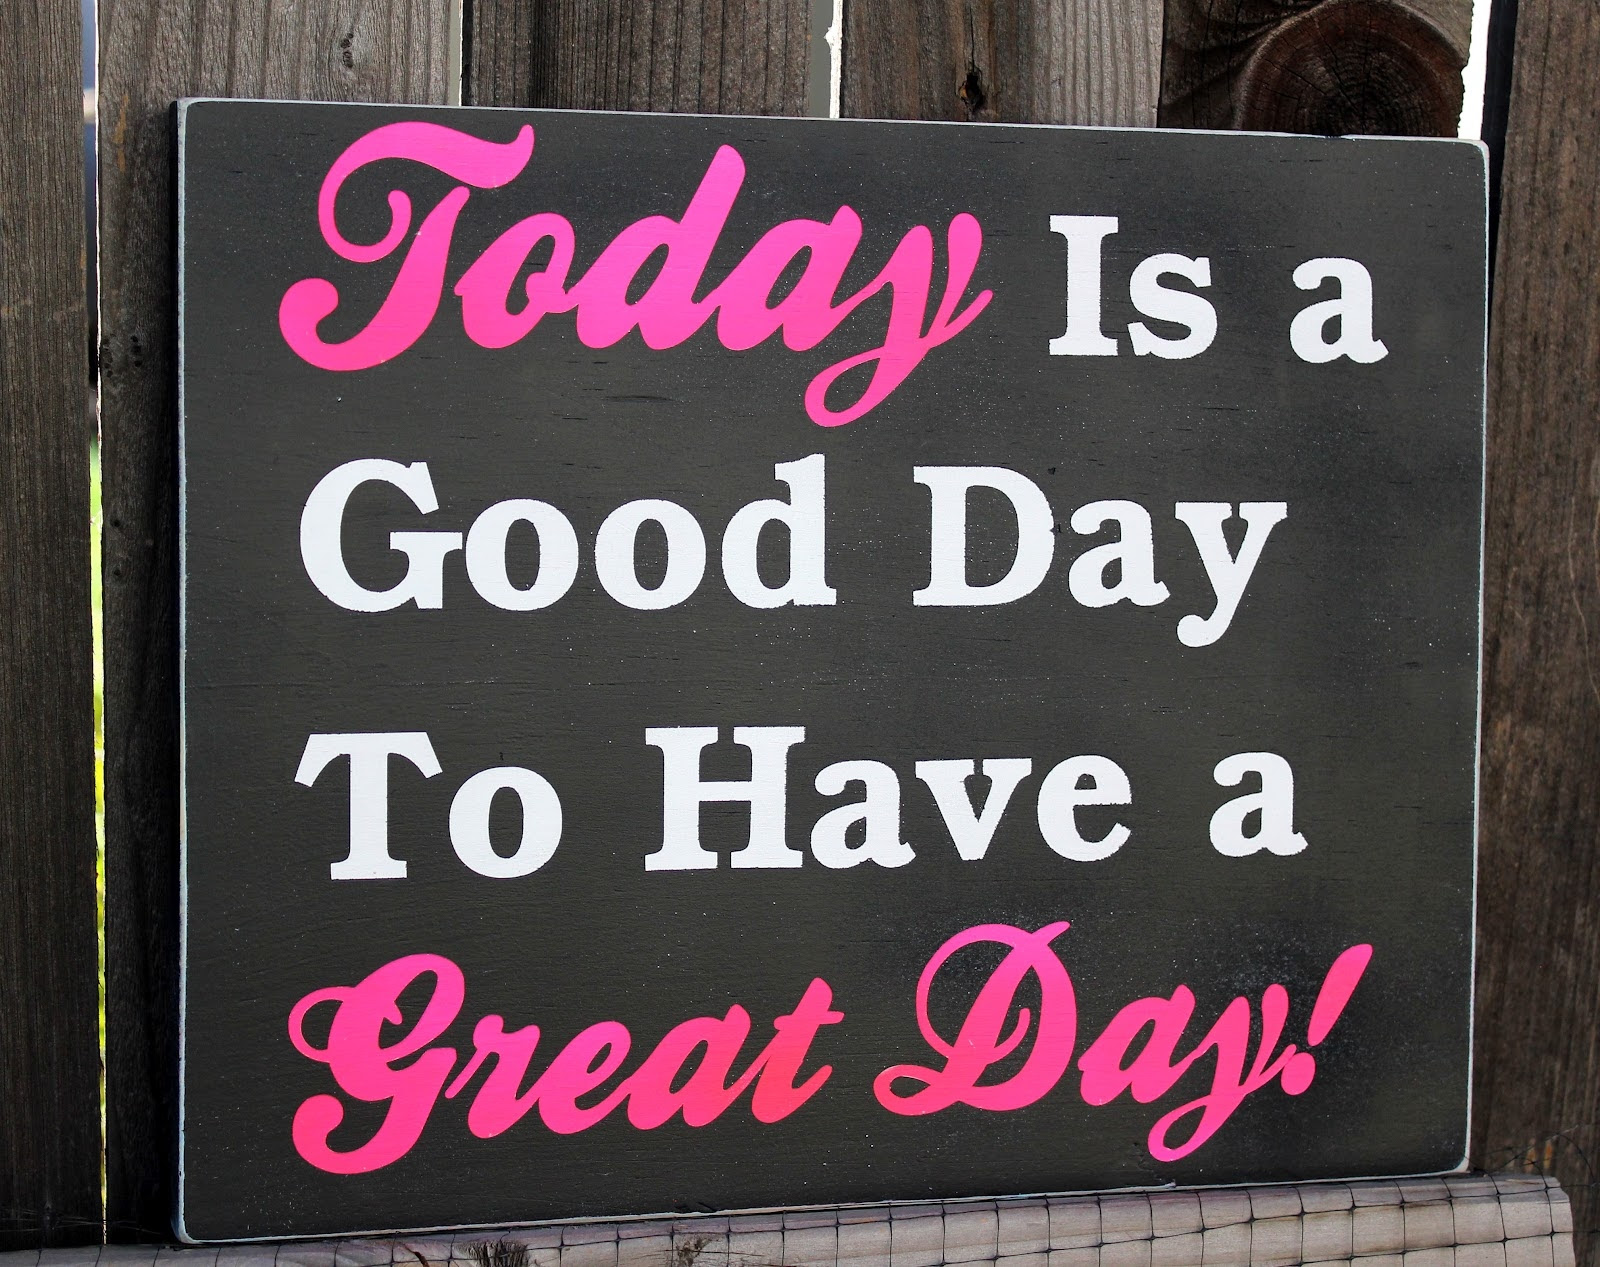 Today Is A Good Day To Have A Great Day Pictures Photos And Images